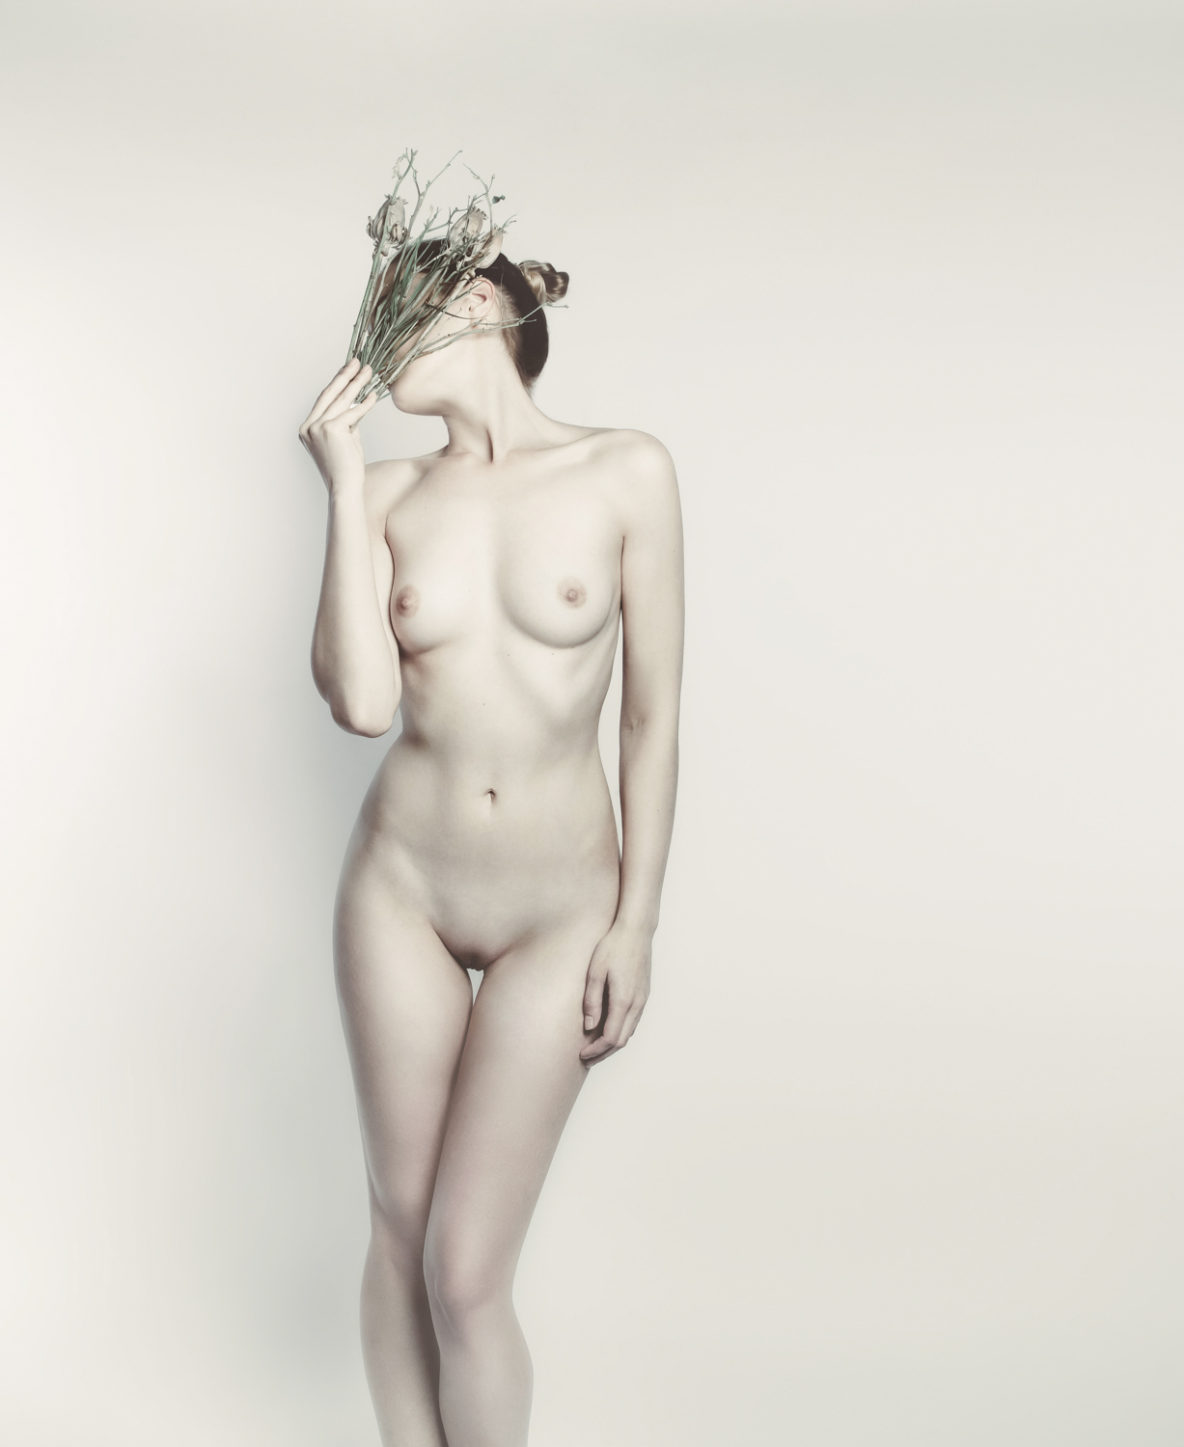 commissioned nude photograph